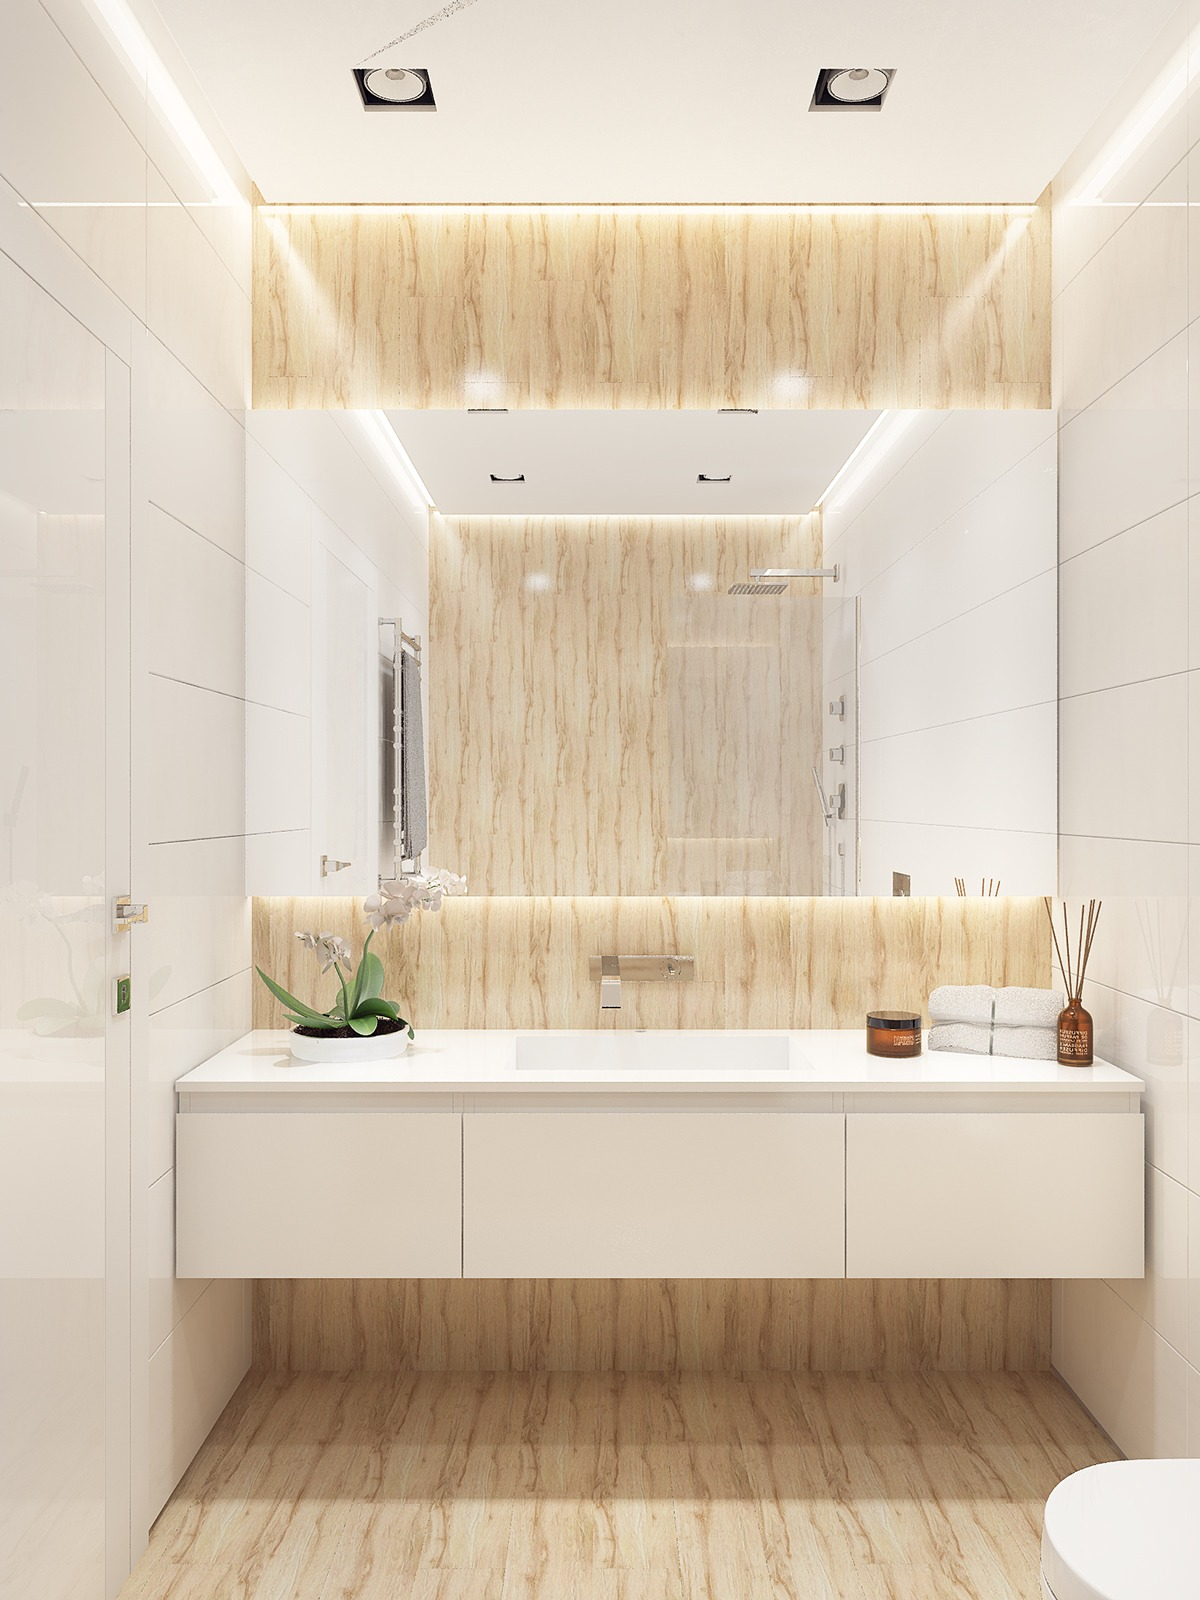 Bathroom Interior Design Ideas 2015 ~ Similarly simple designs with a bright and cheerful tone